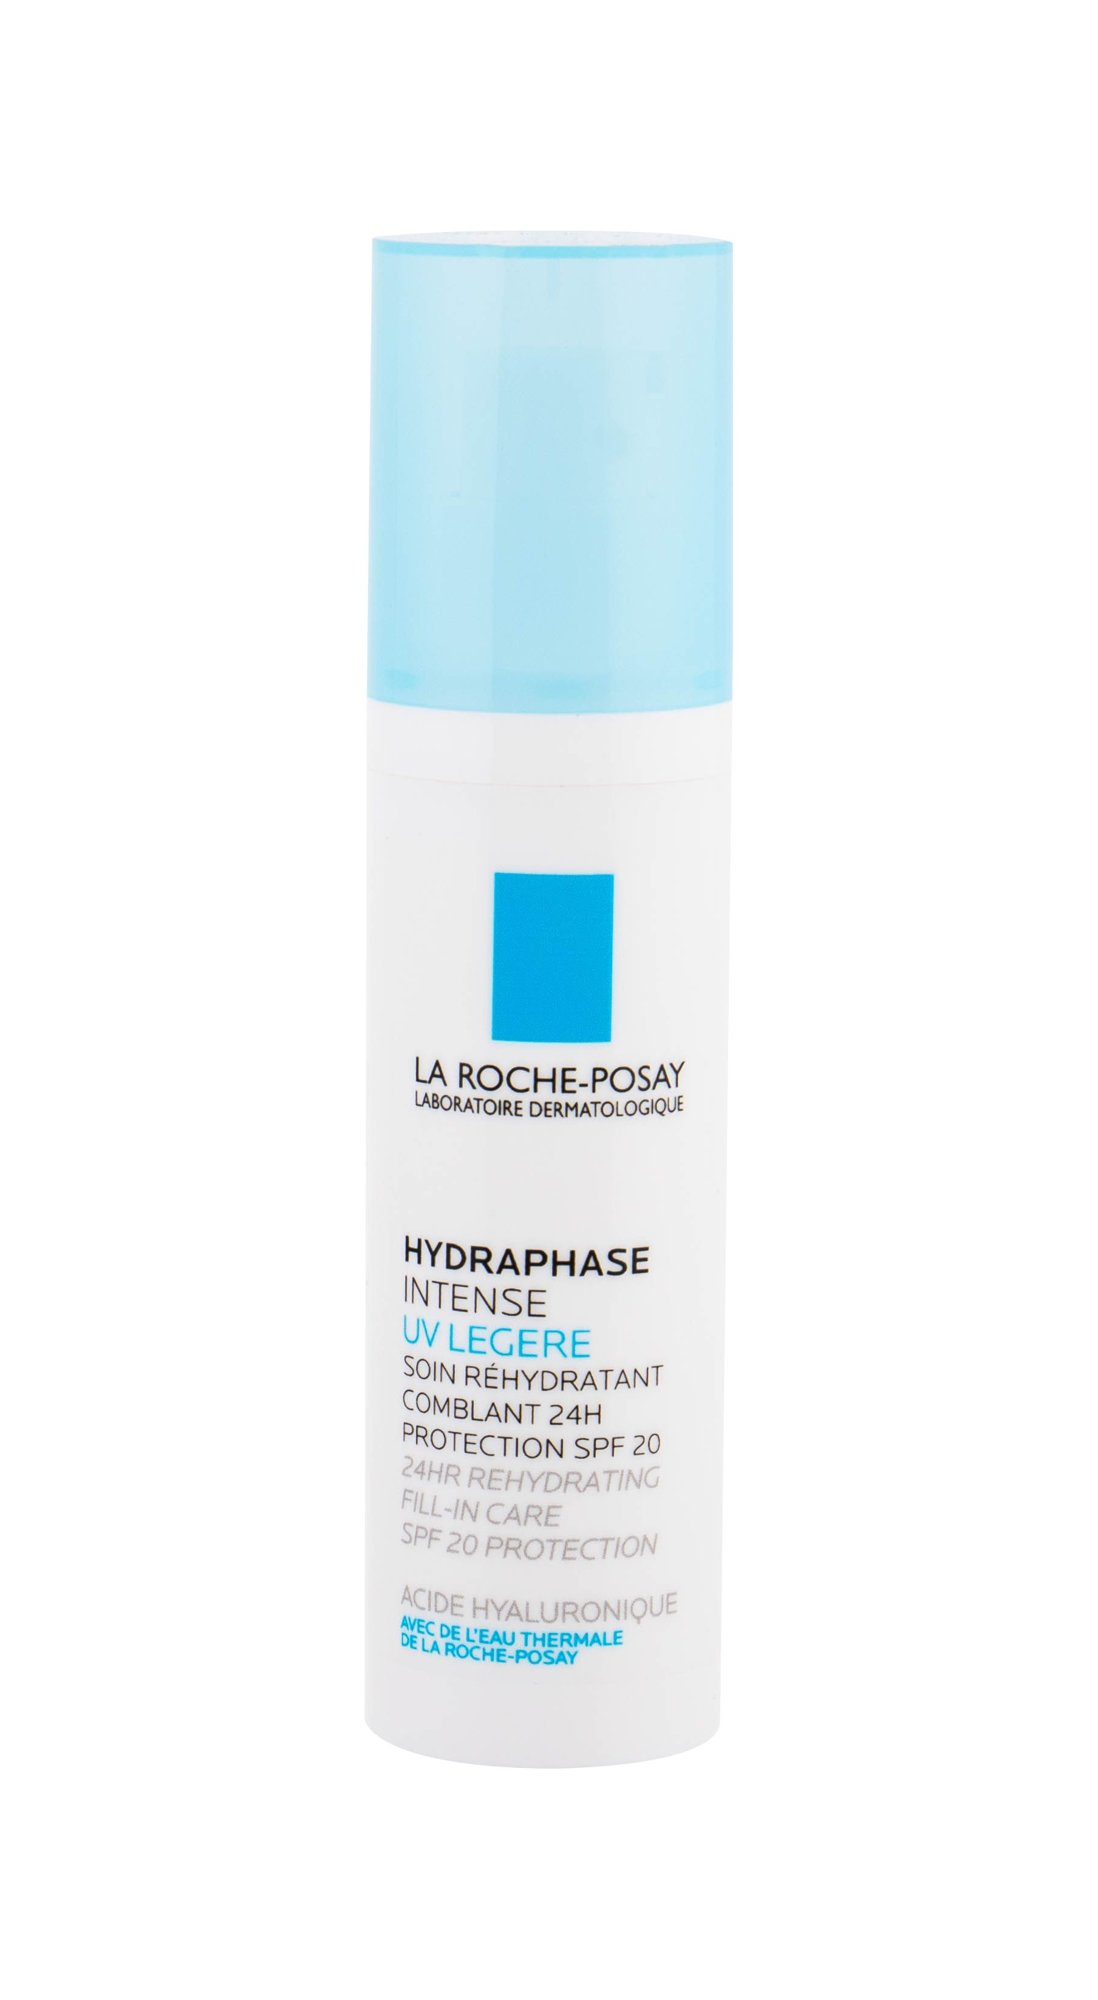 La Roche-Posay Hydraphase Day Cream 50ml